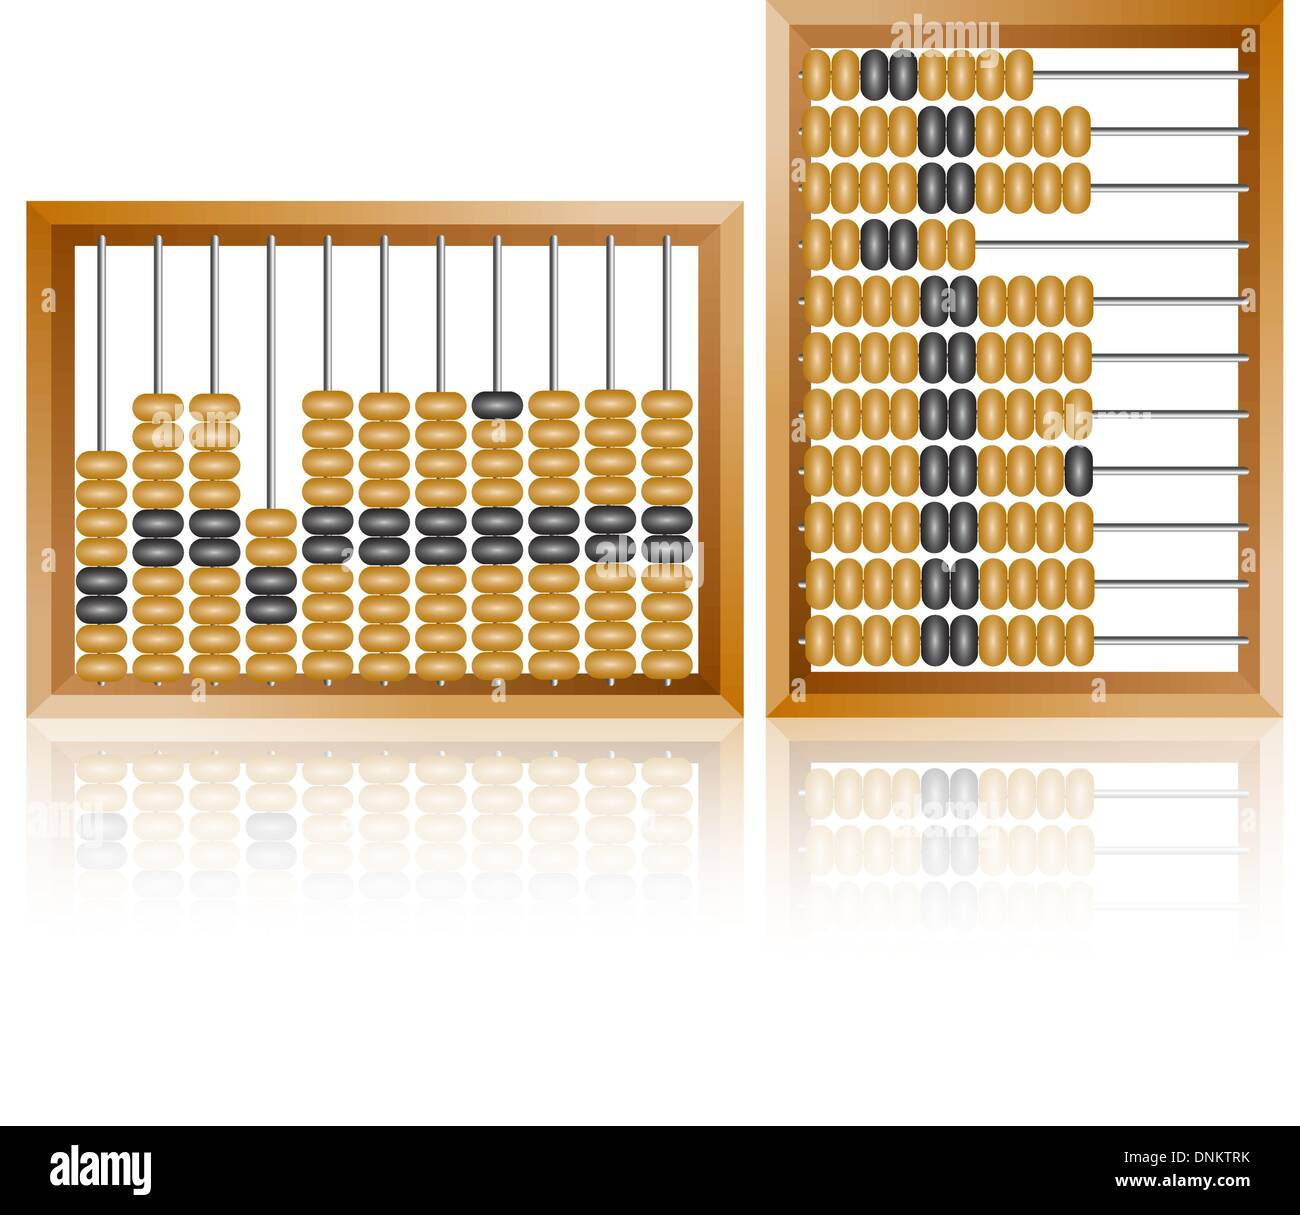 Accounting abacus for financial calculations lies on a white background Stock Vector